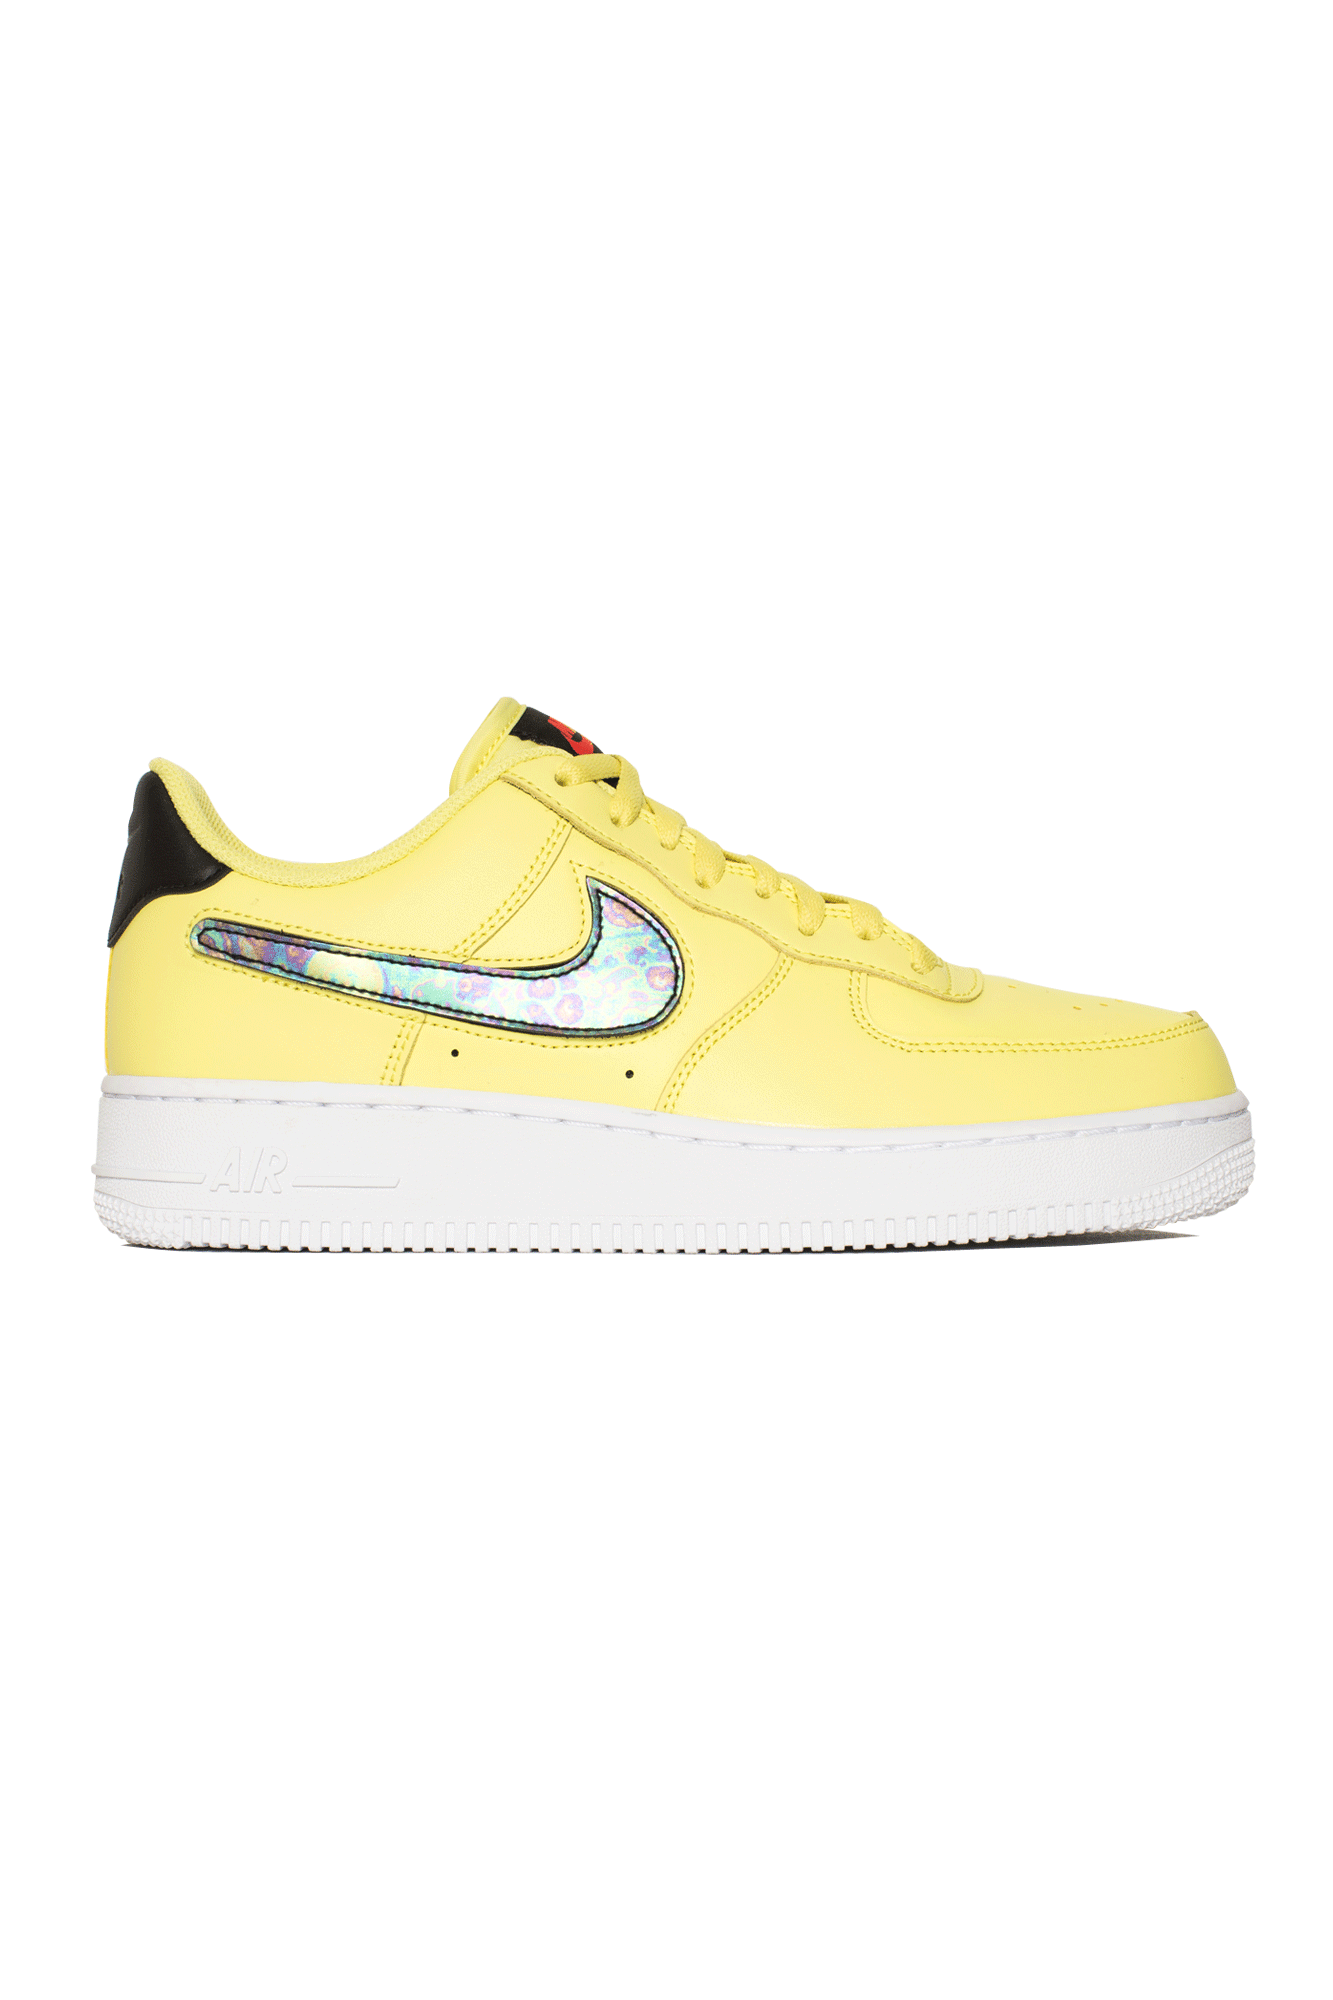 AIR FORCE 1 '07 LV8 3 #N/D